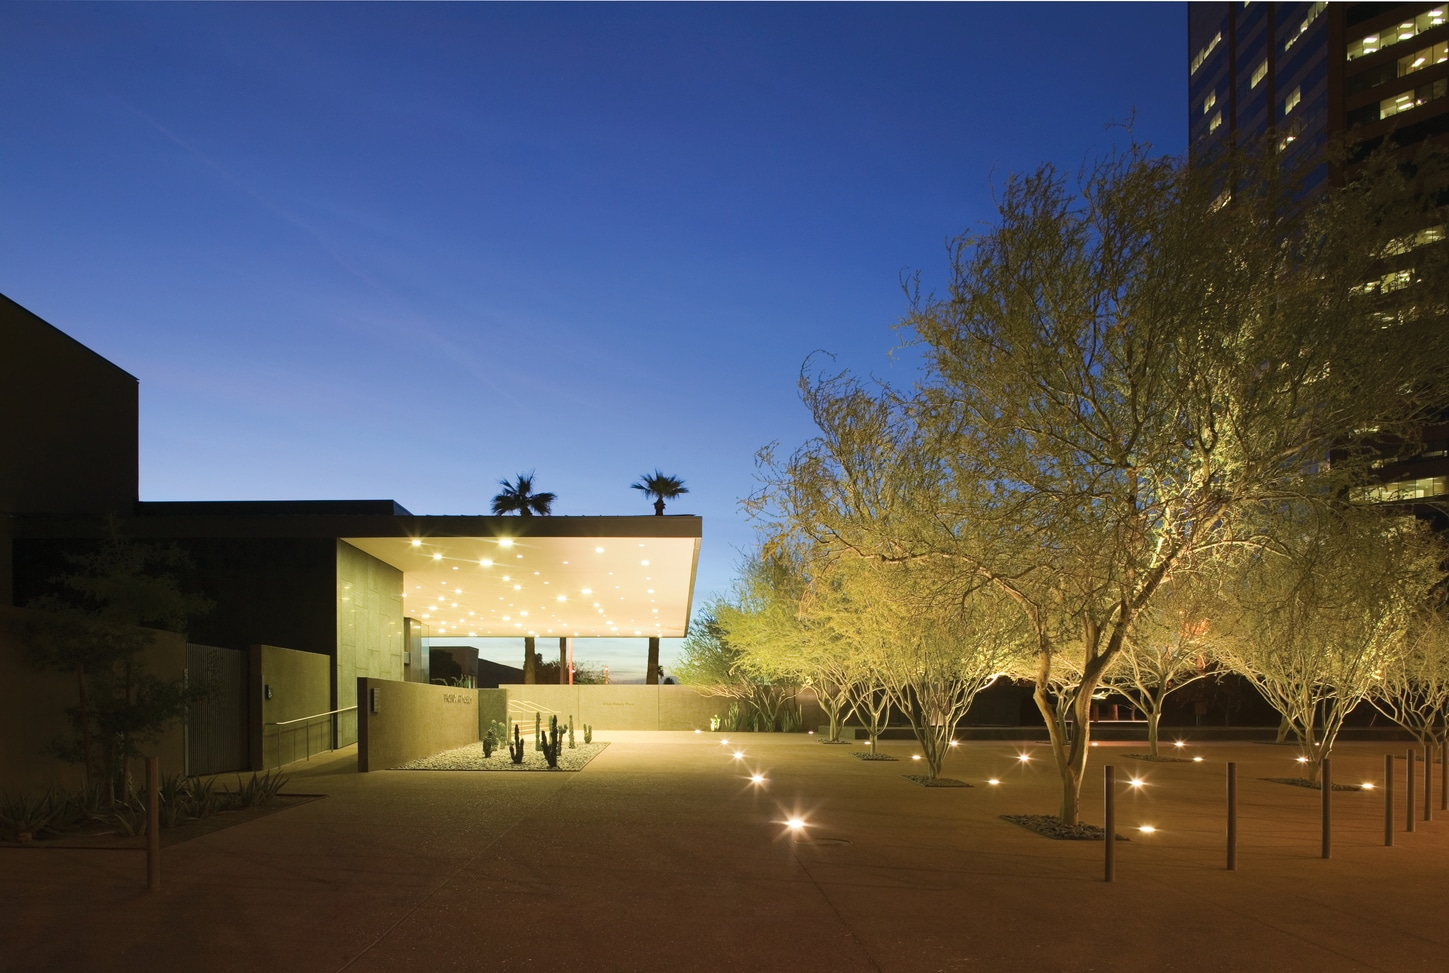 Phoenix Art Museum at night Credit Bill Timmerman